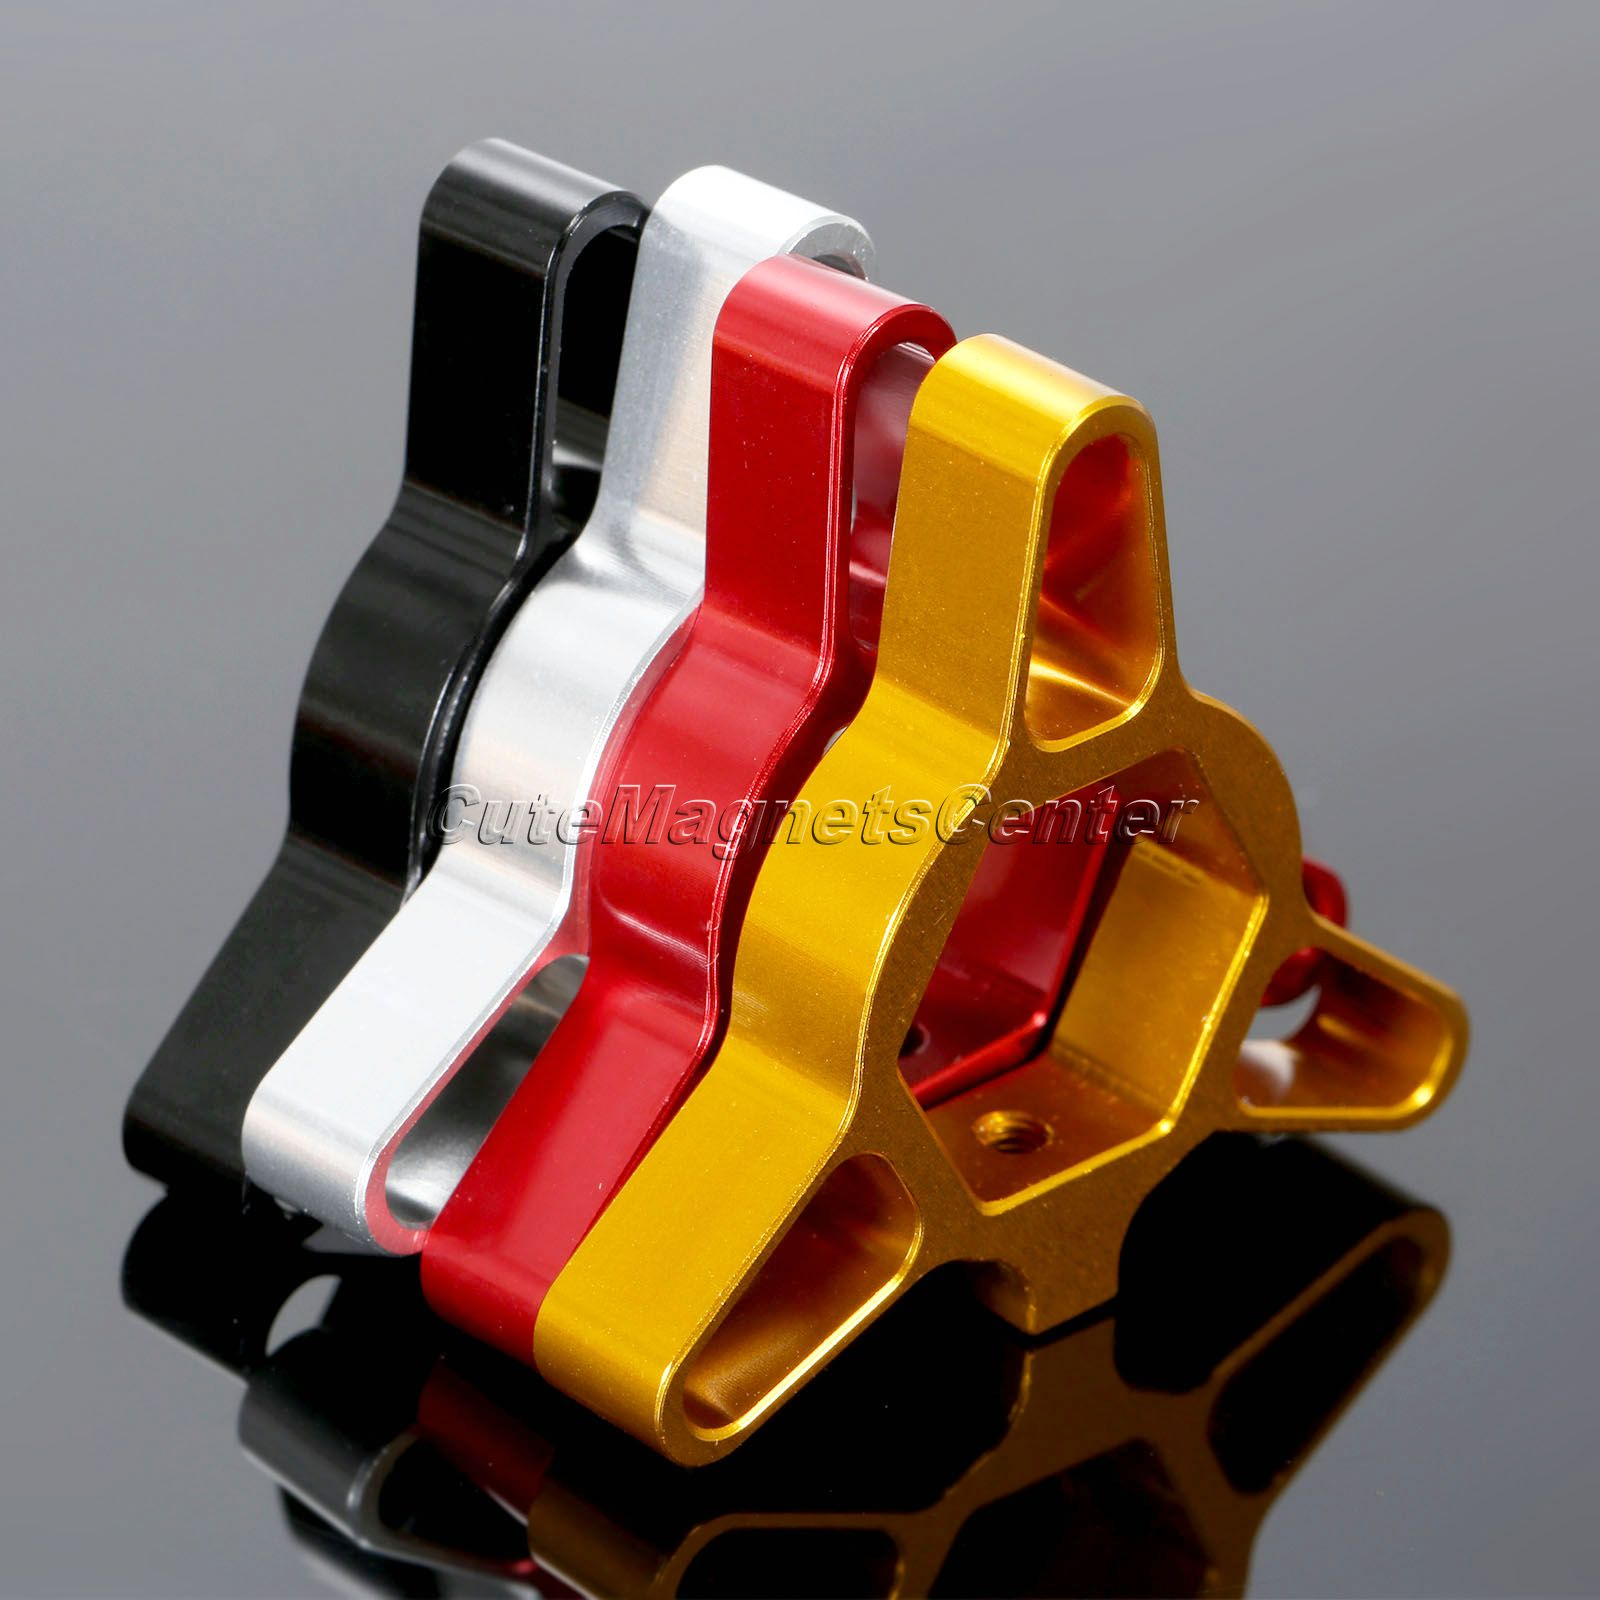 1 Pair Universal 22mm CNC Aluminum Racing Front Motorcycle Fork Preload Adjusters for Honda YAMAHA Suzuki Silver Gold Red Black aluminum alloy cnc front fork washer bike accessories gold 4 piece pack